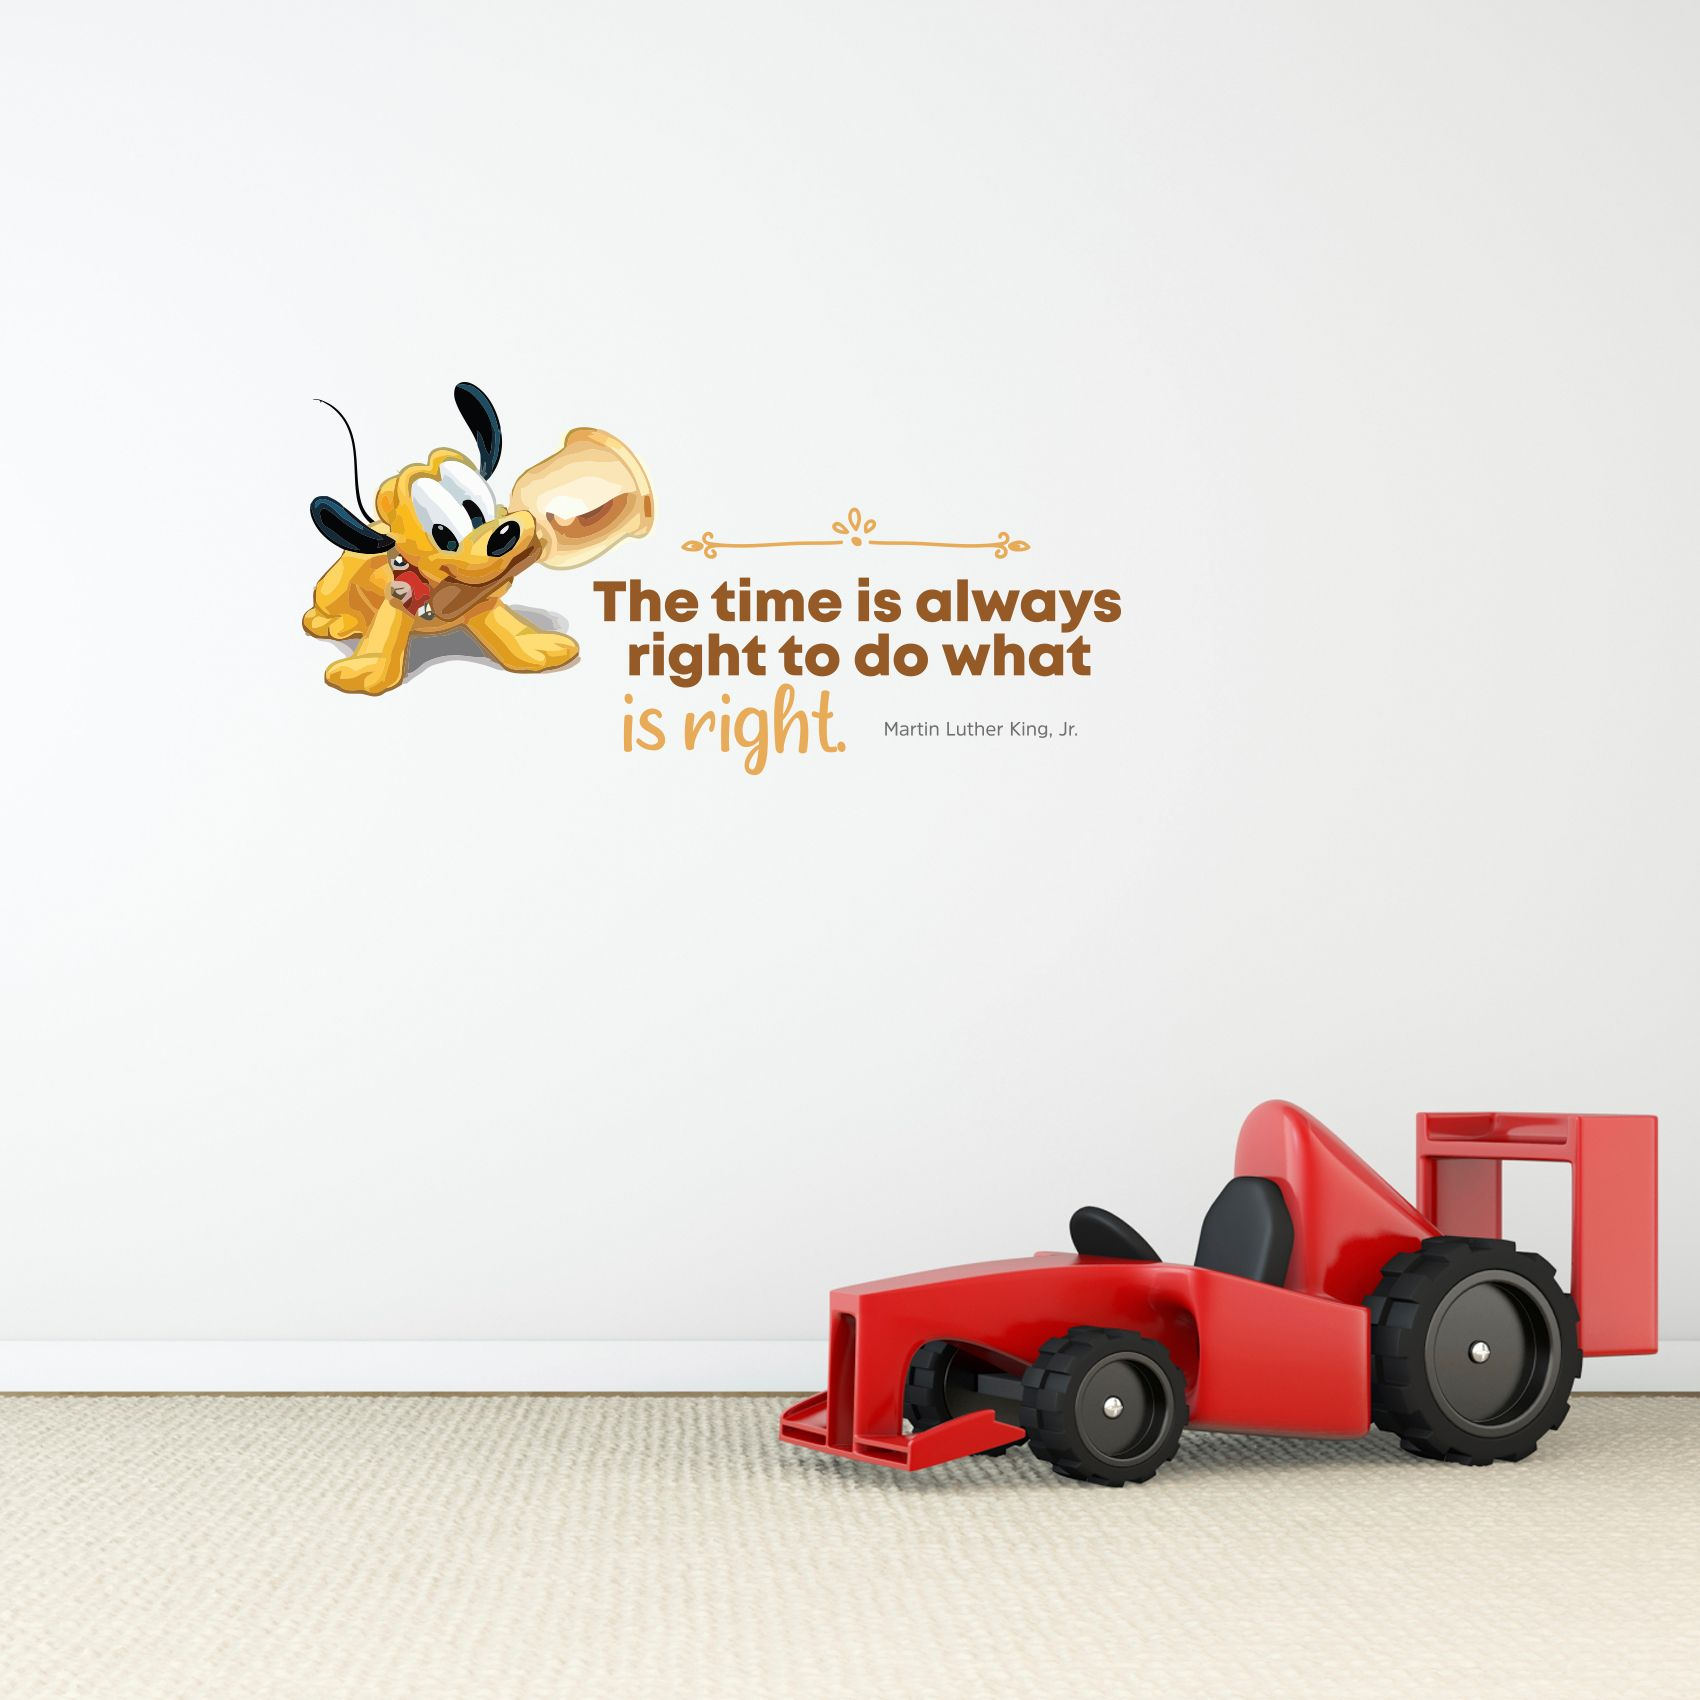 Always Right Baby Pluto Cute Quote Cartoon Quotes Decors Wall Sticker Art Design Decal For Girls Boys Kids Room Bedroom Nursery Kindergarten Home Decor Stickers Wall Art Vinyl Decoration 8x10 Inch